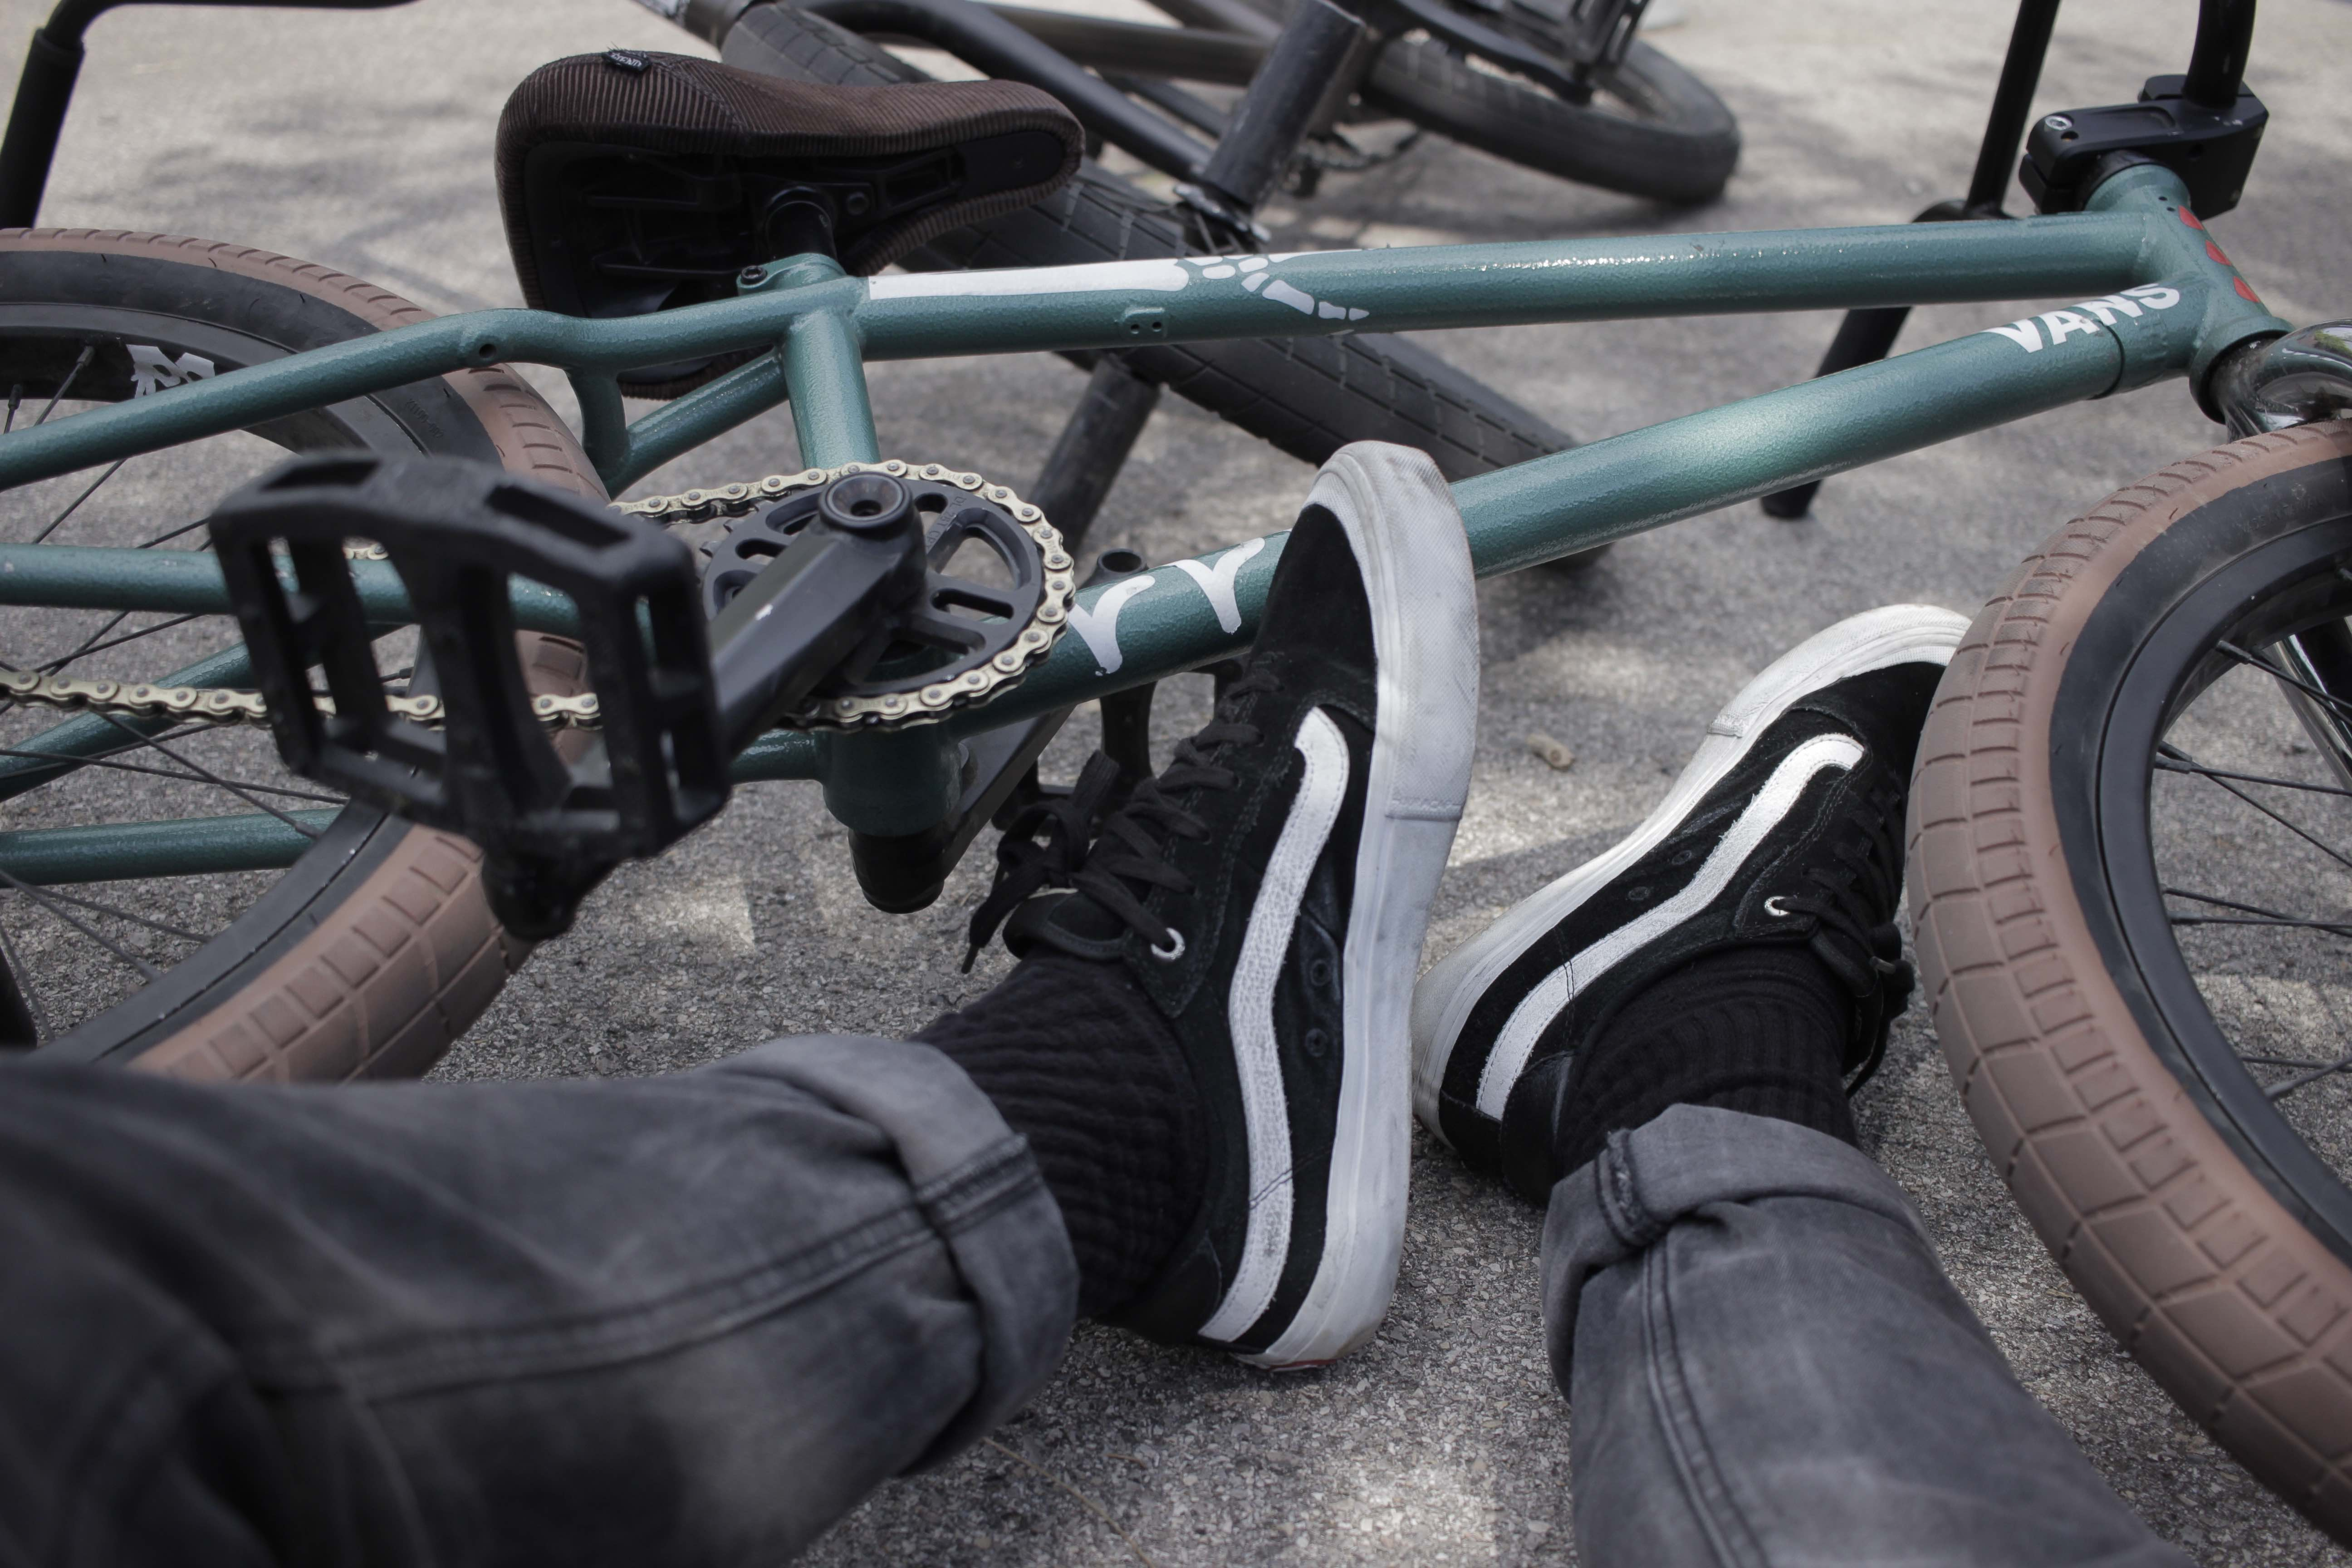 Shoutout to Vans South Africa for supporting BMX